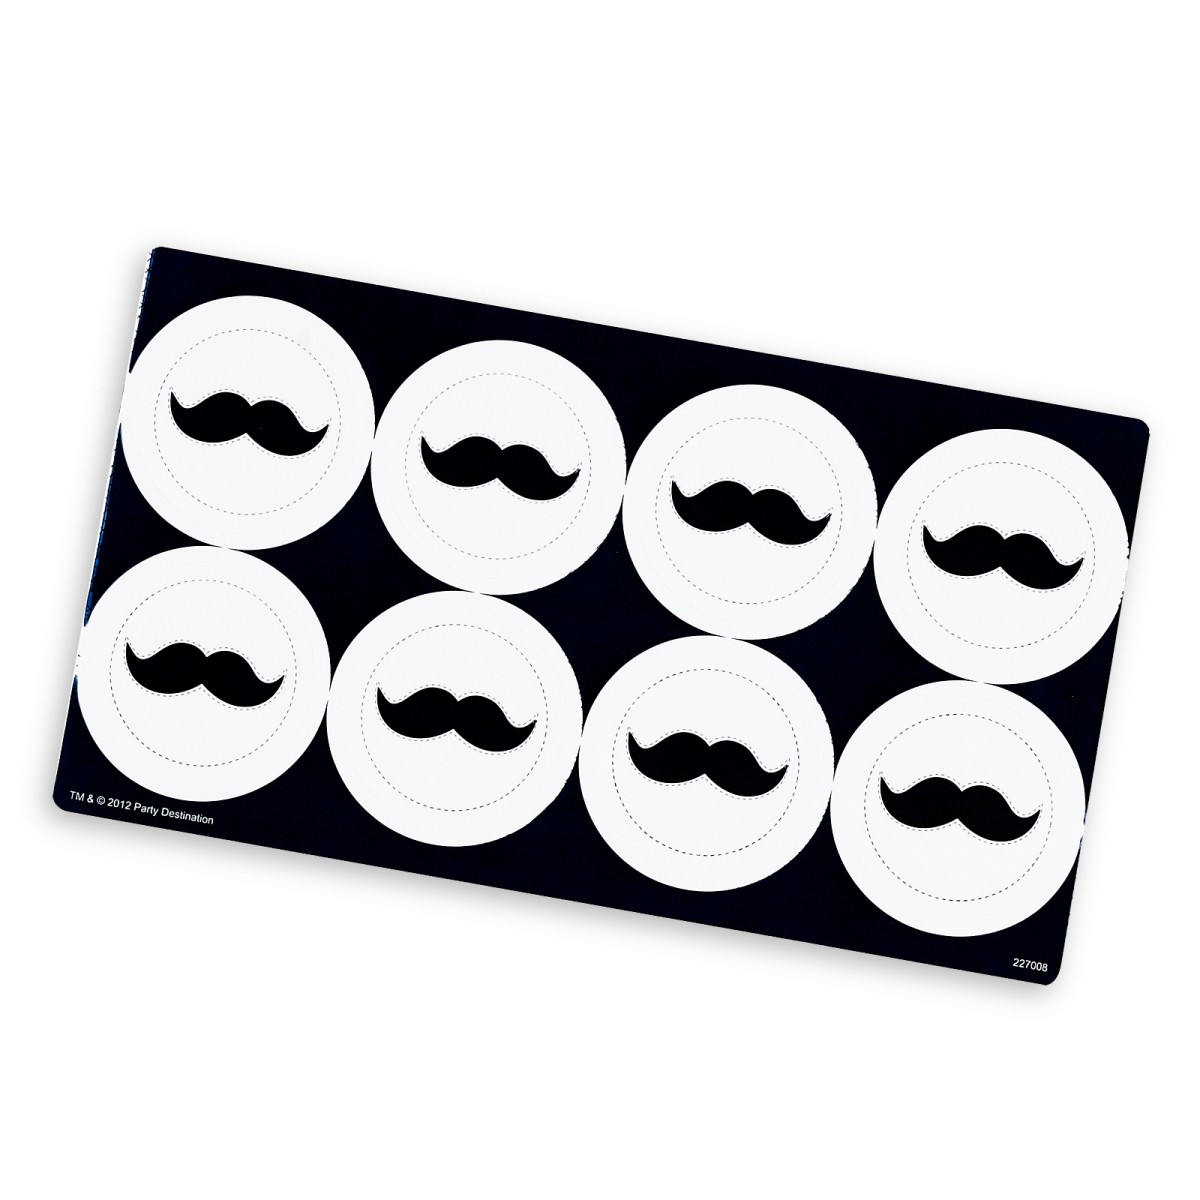 Little Man Mustache Small Lollipop Sticker Sheet